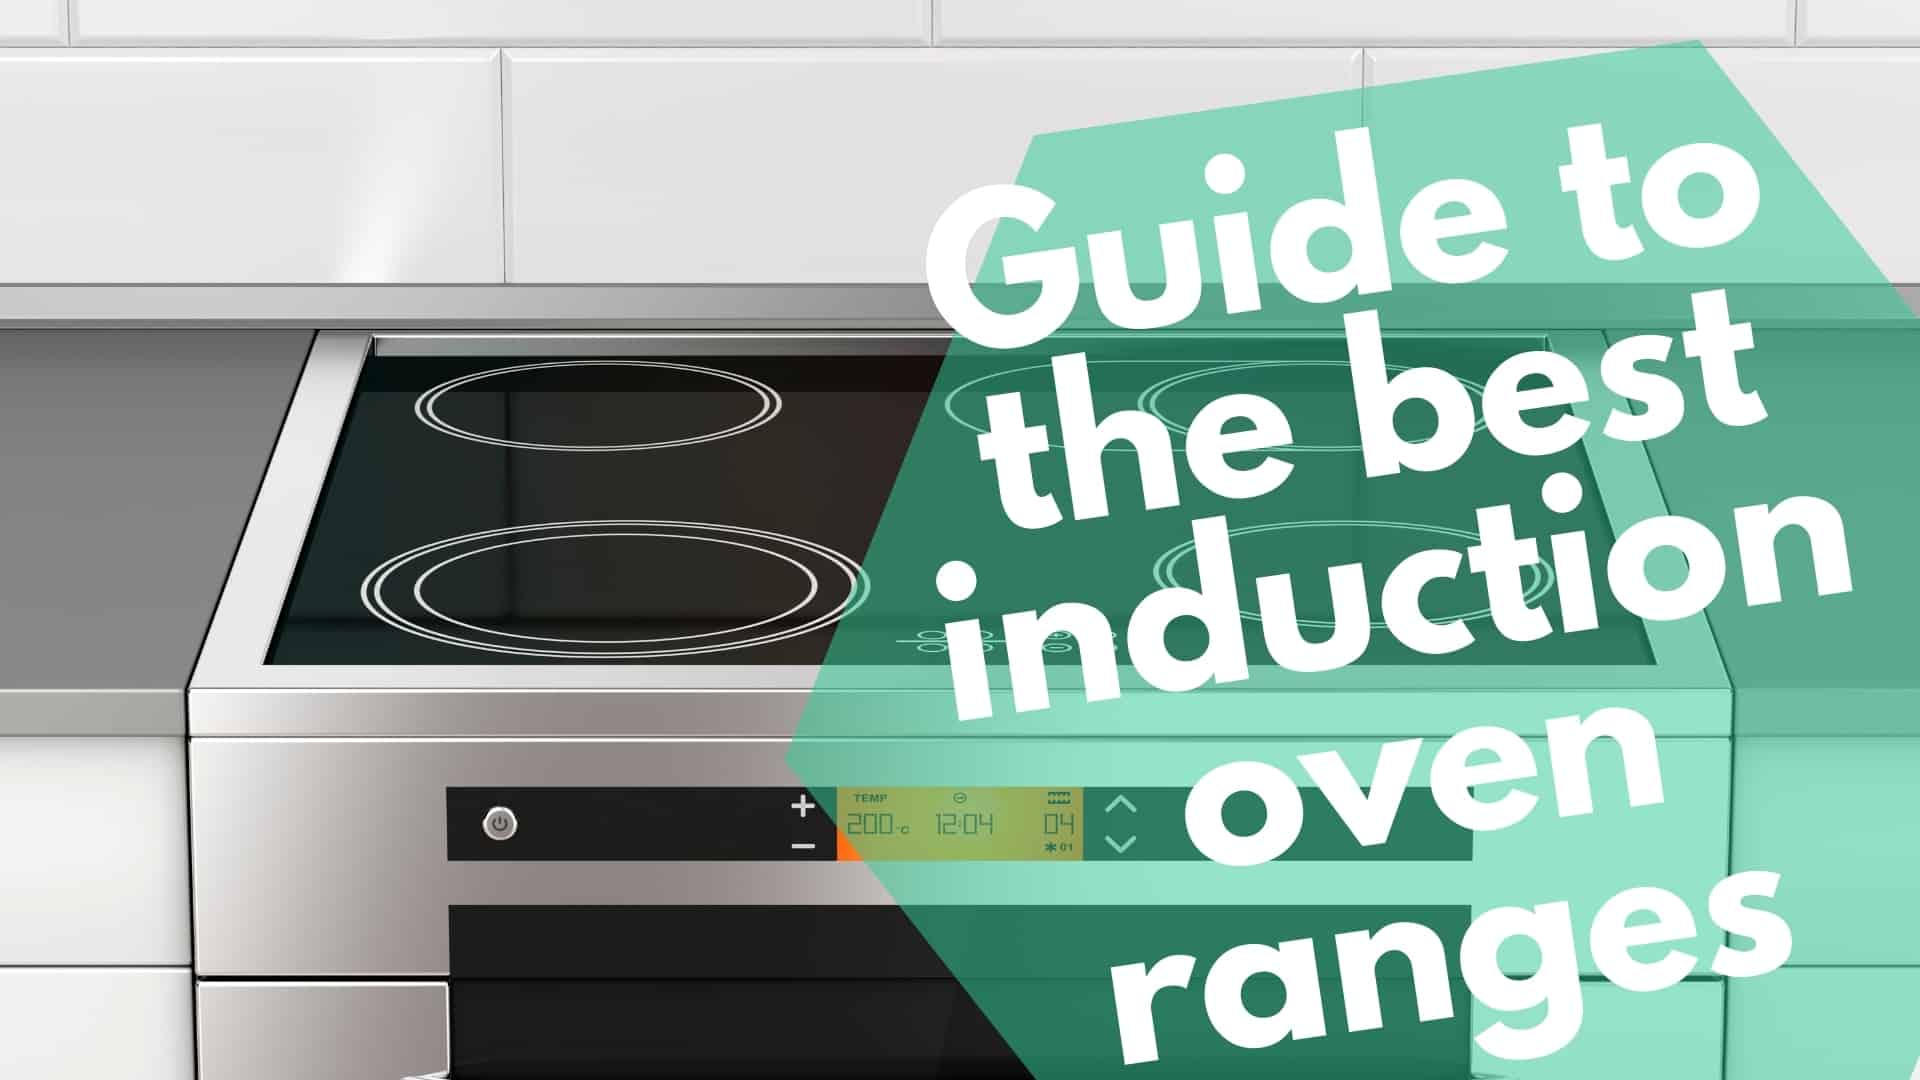 Guide to the best induction oven ranges